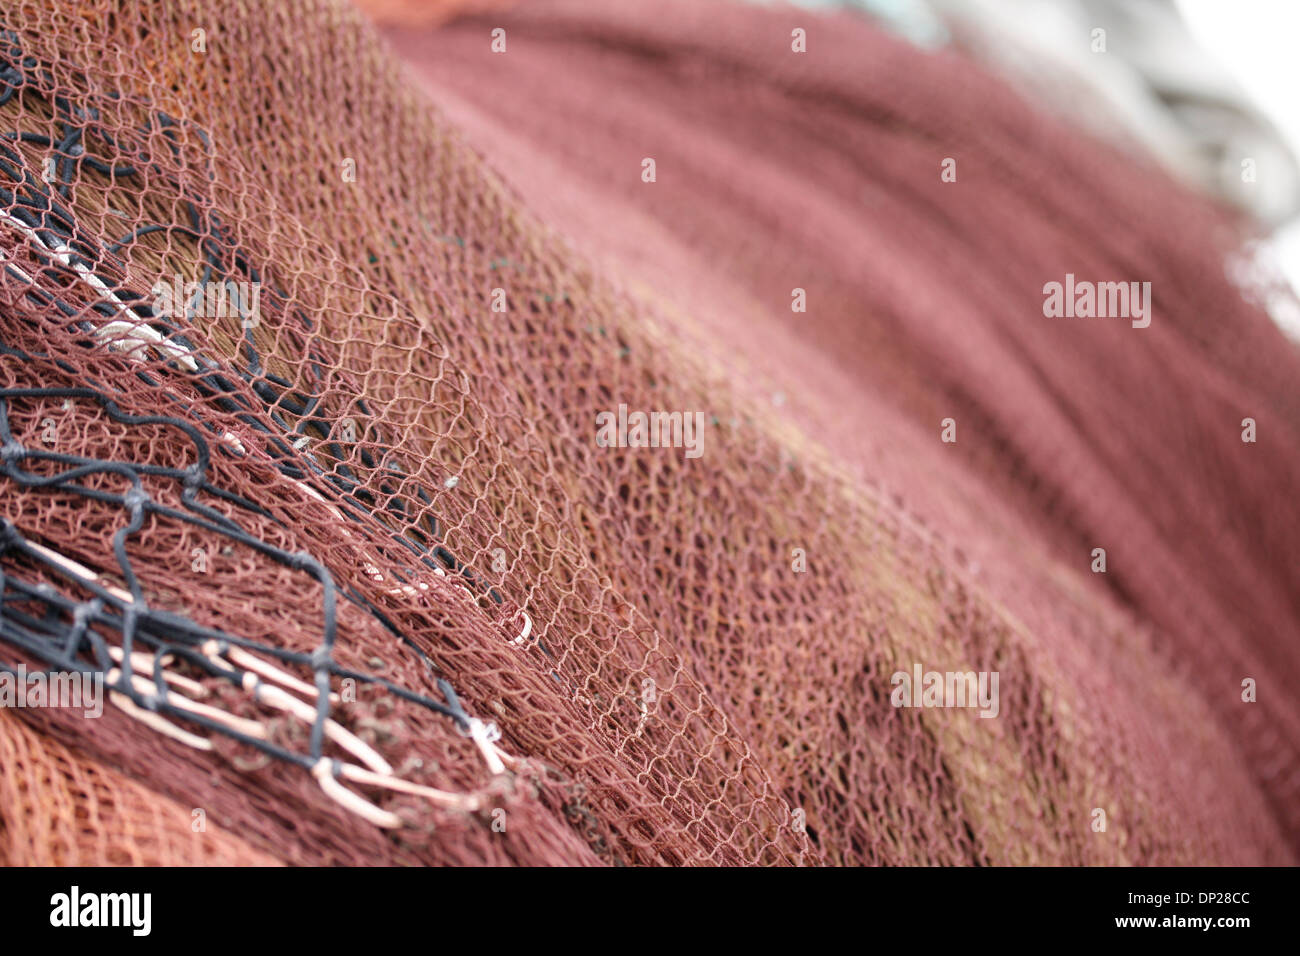 Colorful Netting Stock Photos & Colorful Netting Stock Images - Alamy